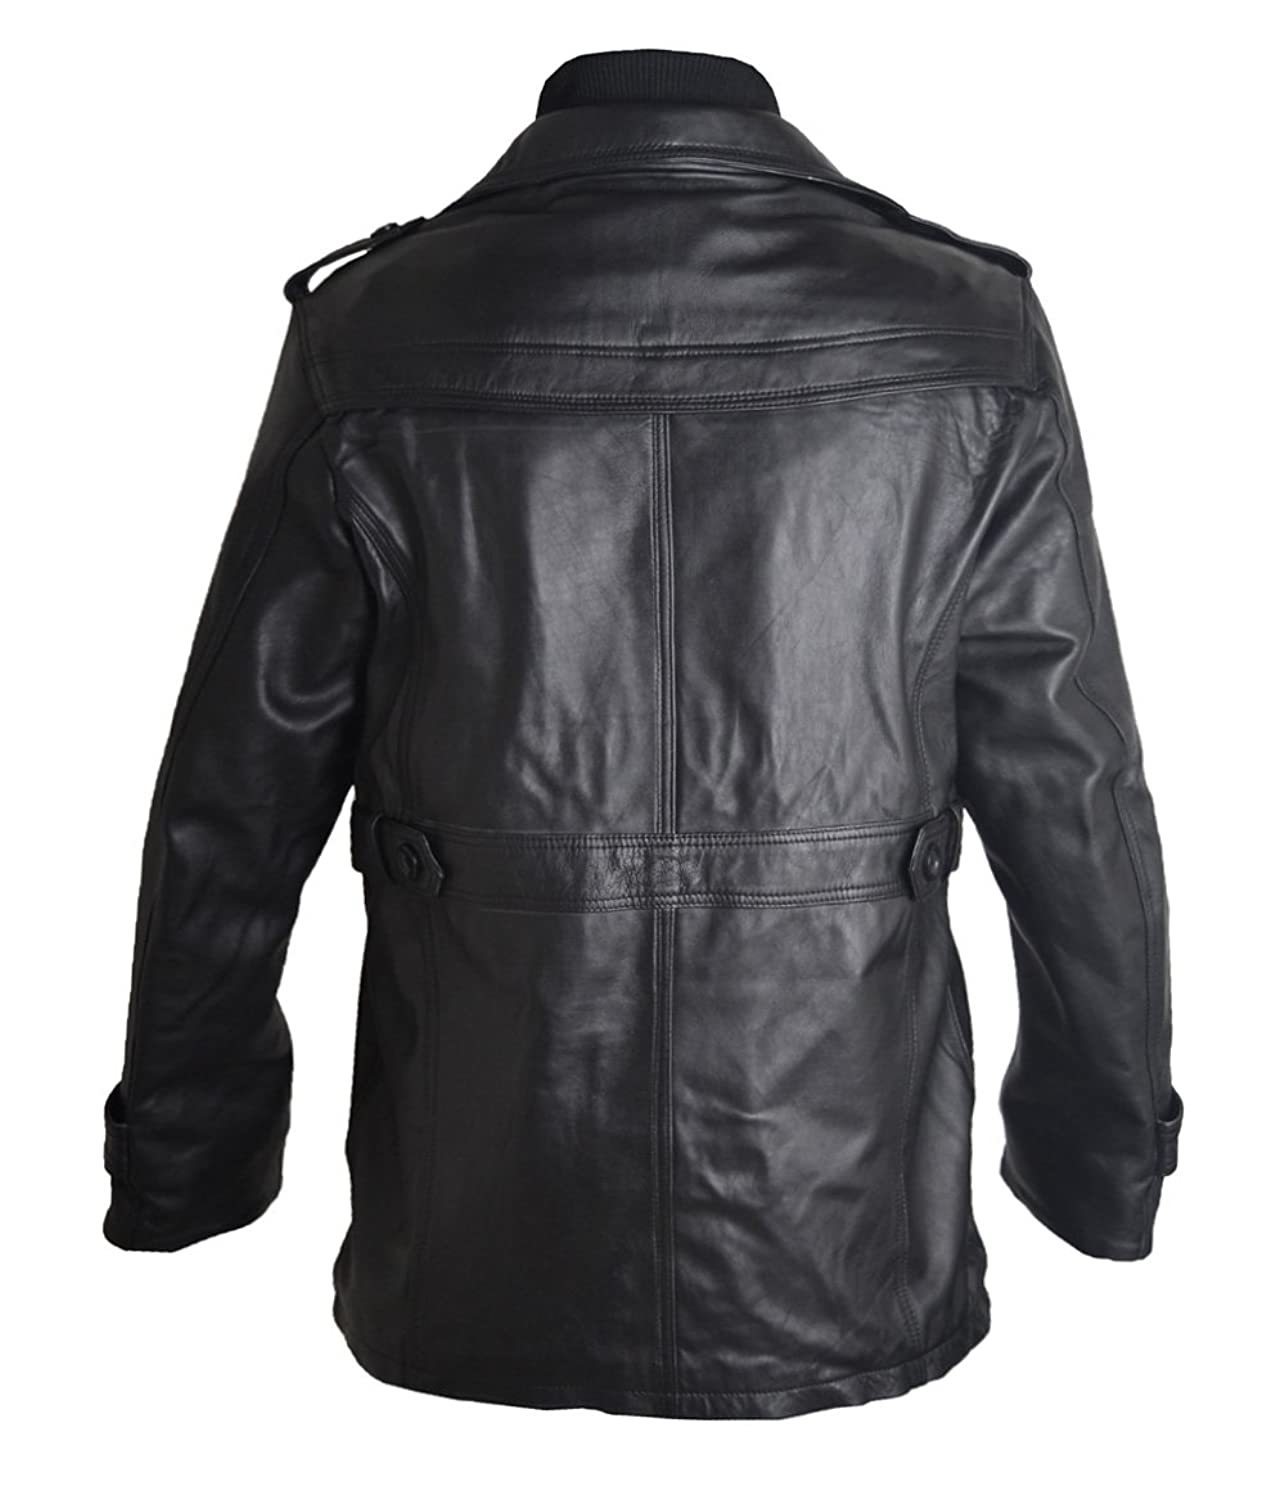 FWL Men's Double Collar Sharp Black Button Sheep Leather Jacket XXS-5XL Black